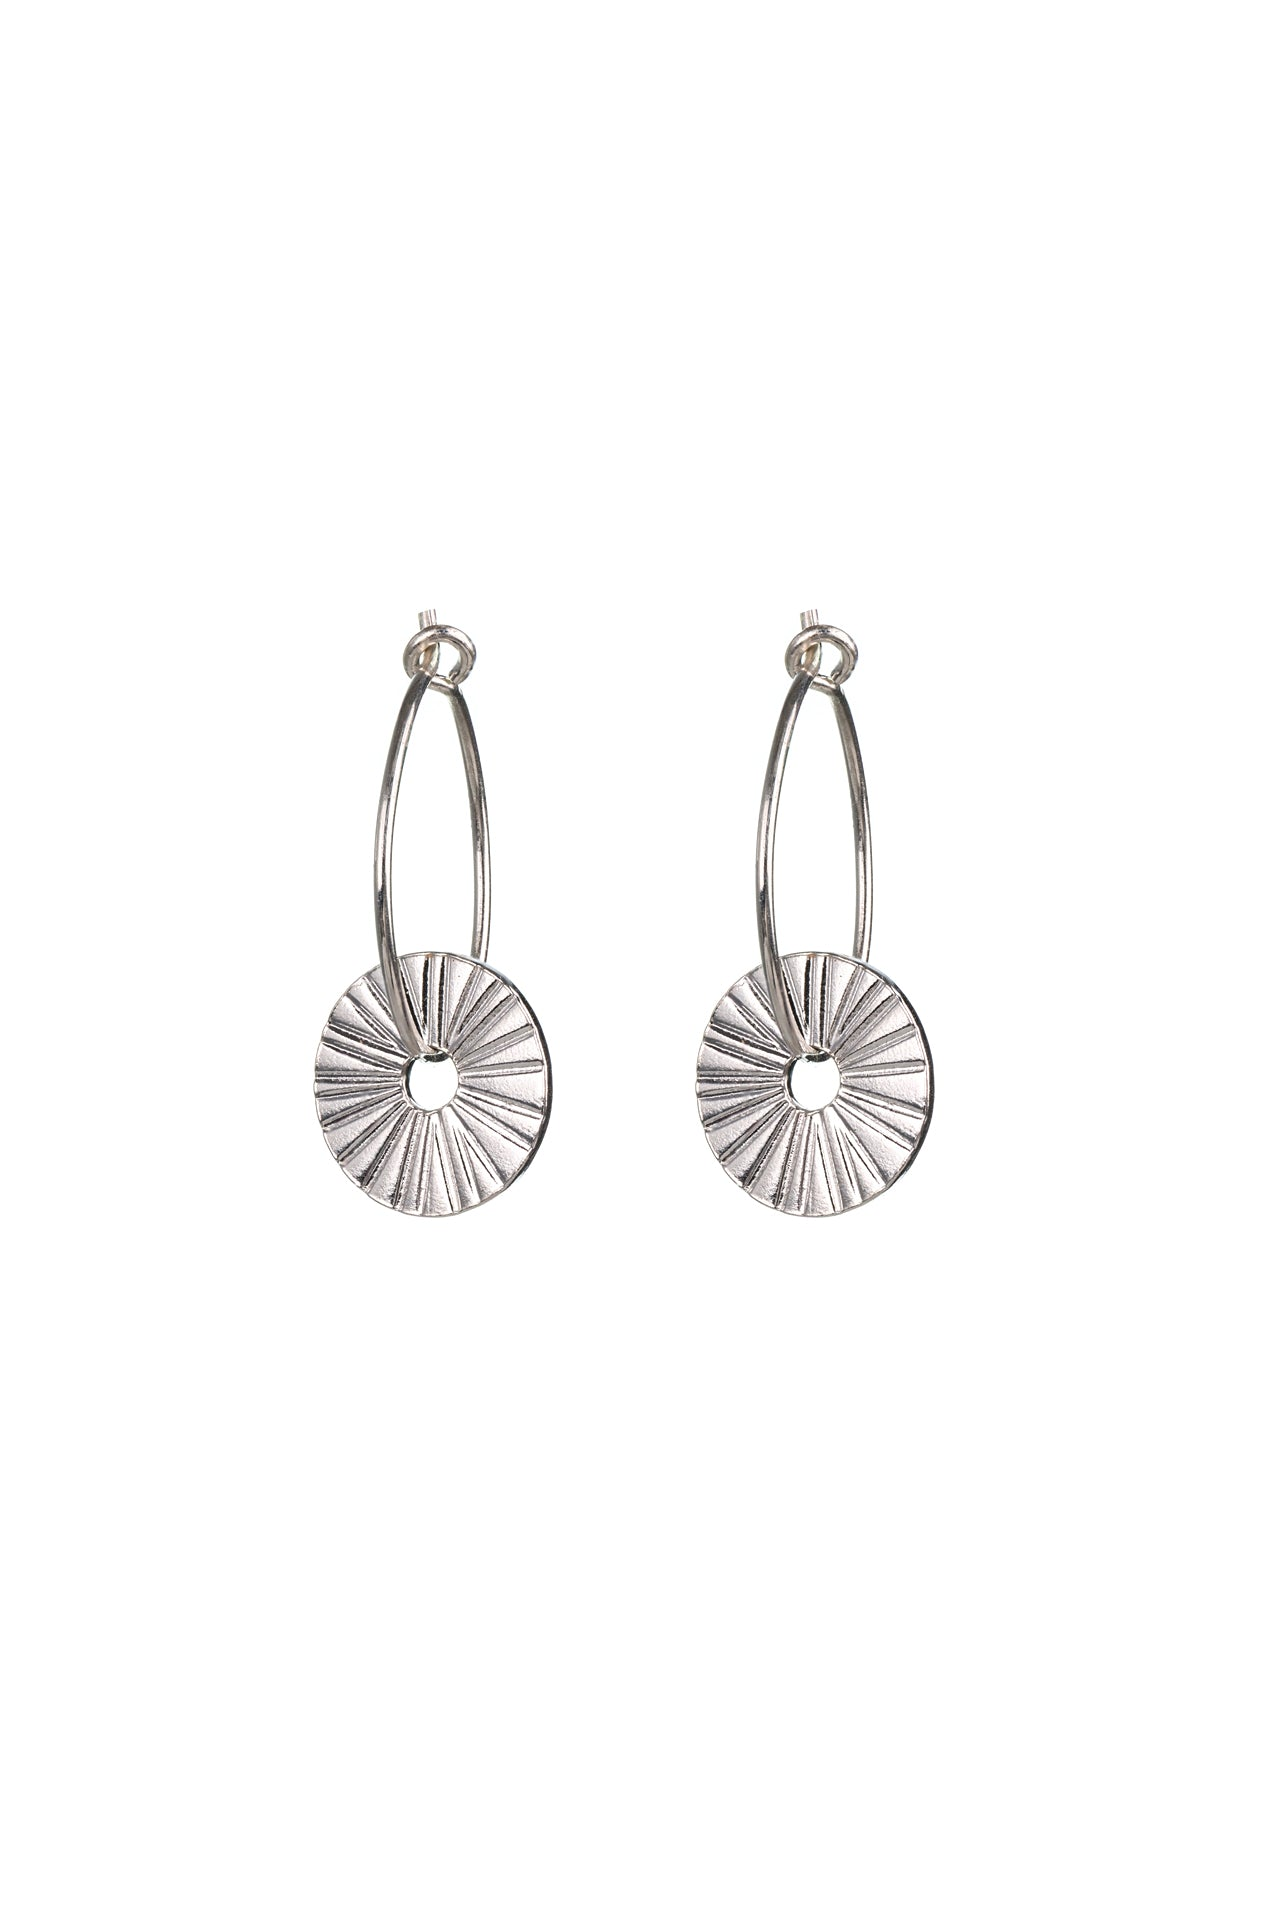 New Silver Surfside Earrings